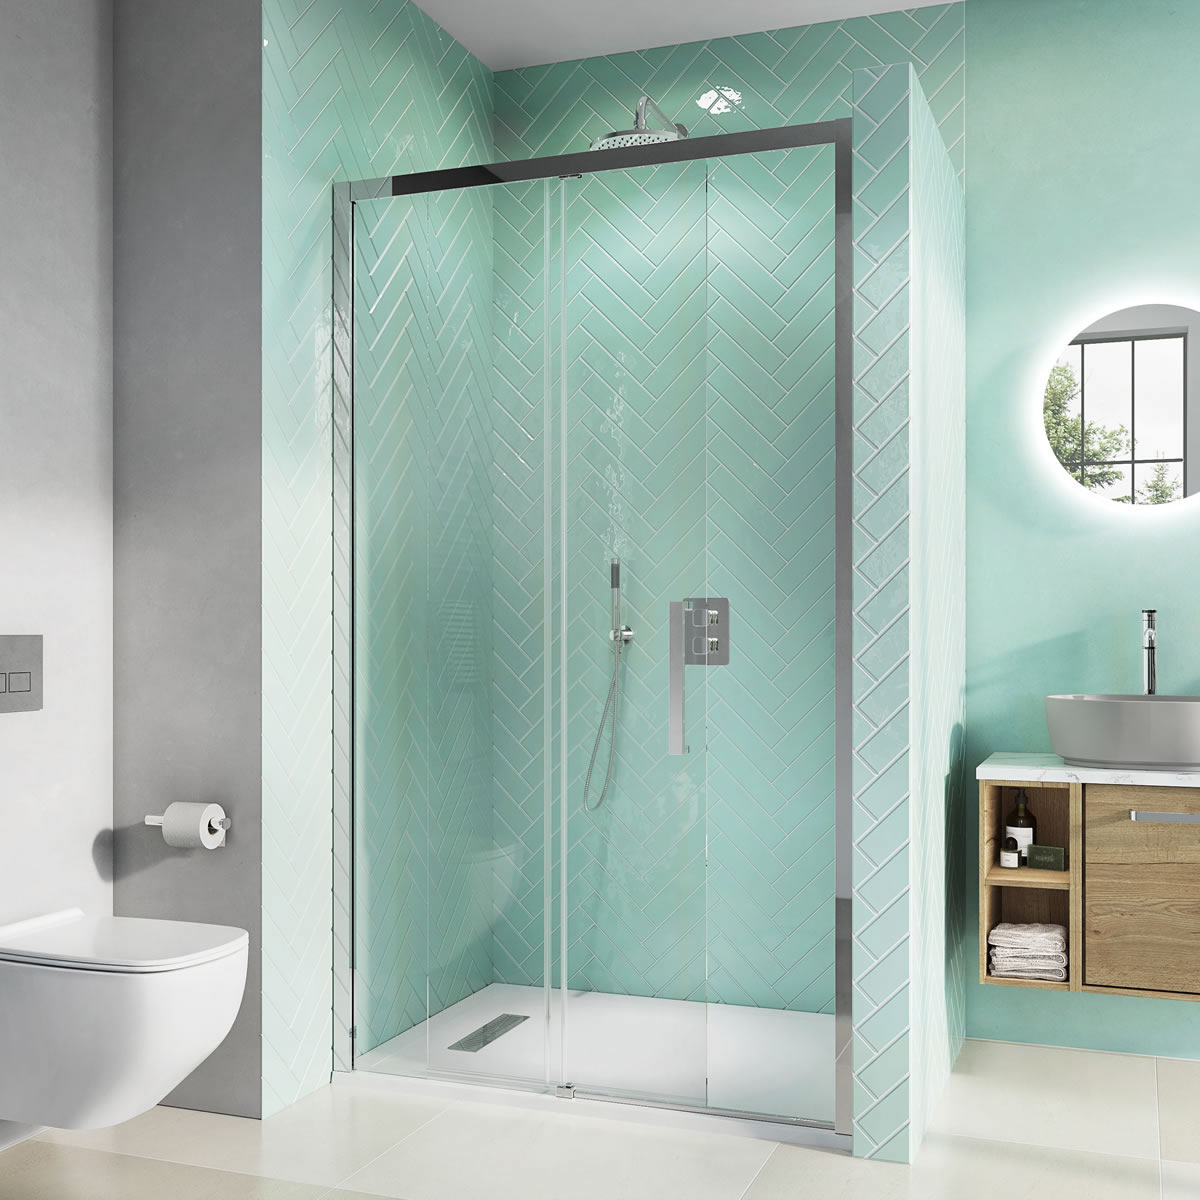 Infinity 8 Single Sliding Door with Soft Close